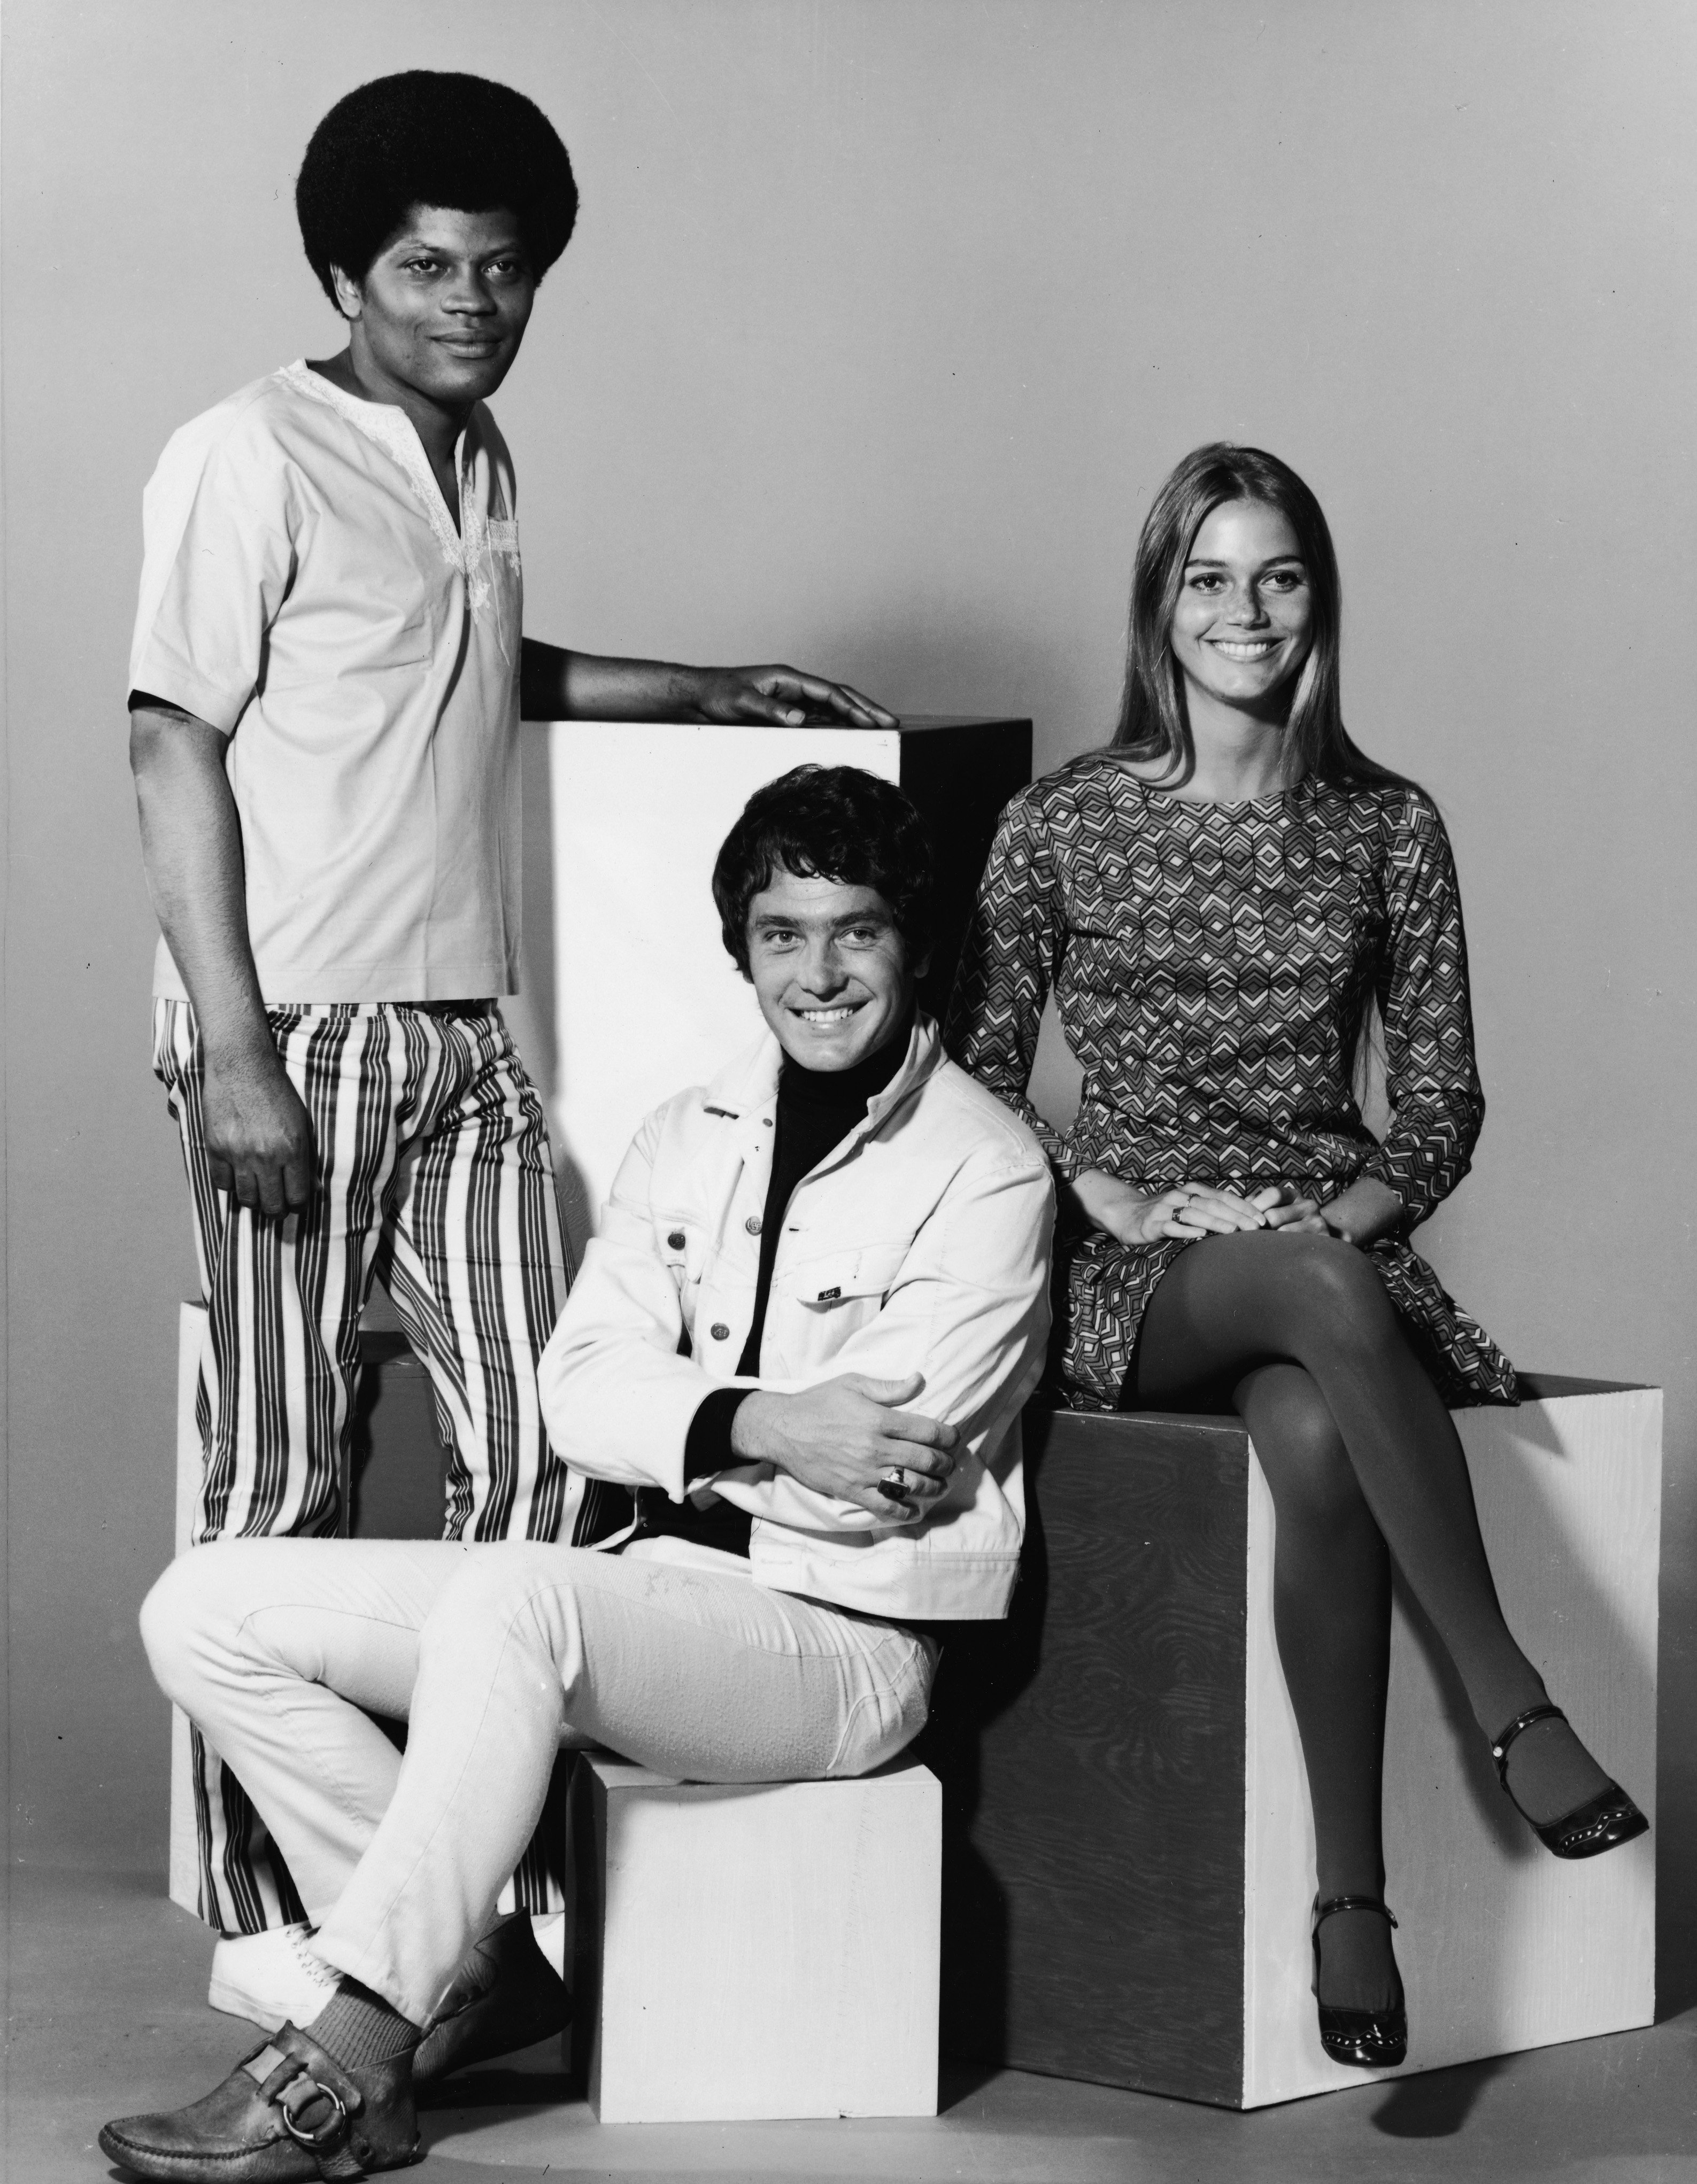 """Peggy Lipton posing with Clarence Williams III and Michael Cole for the show """"The Mod Squad"""" in 1968 